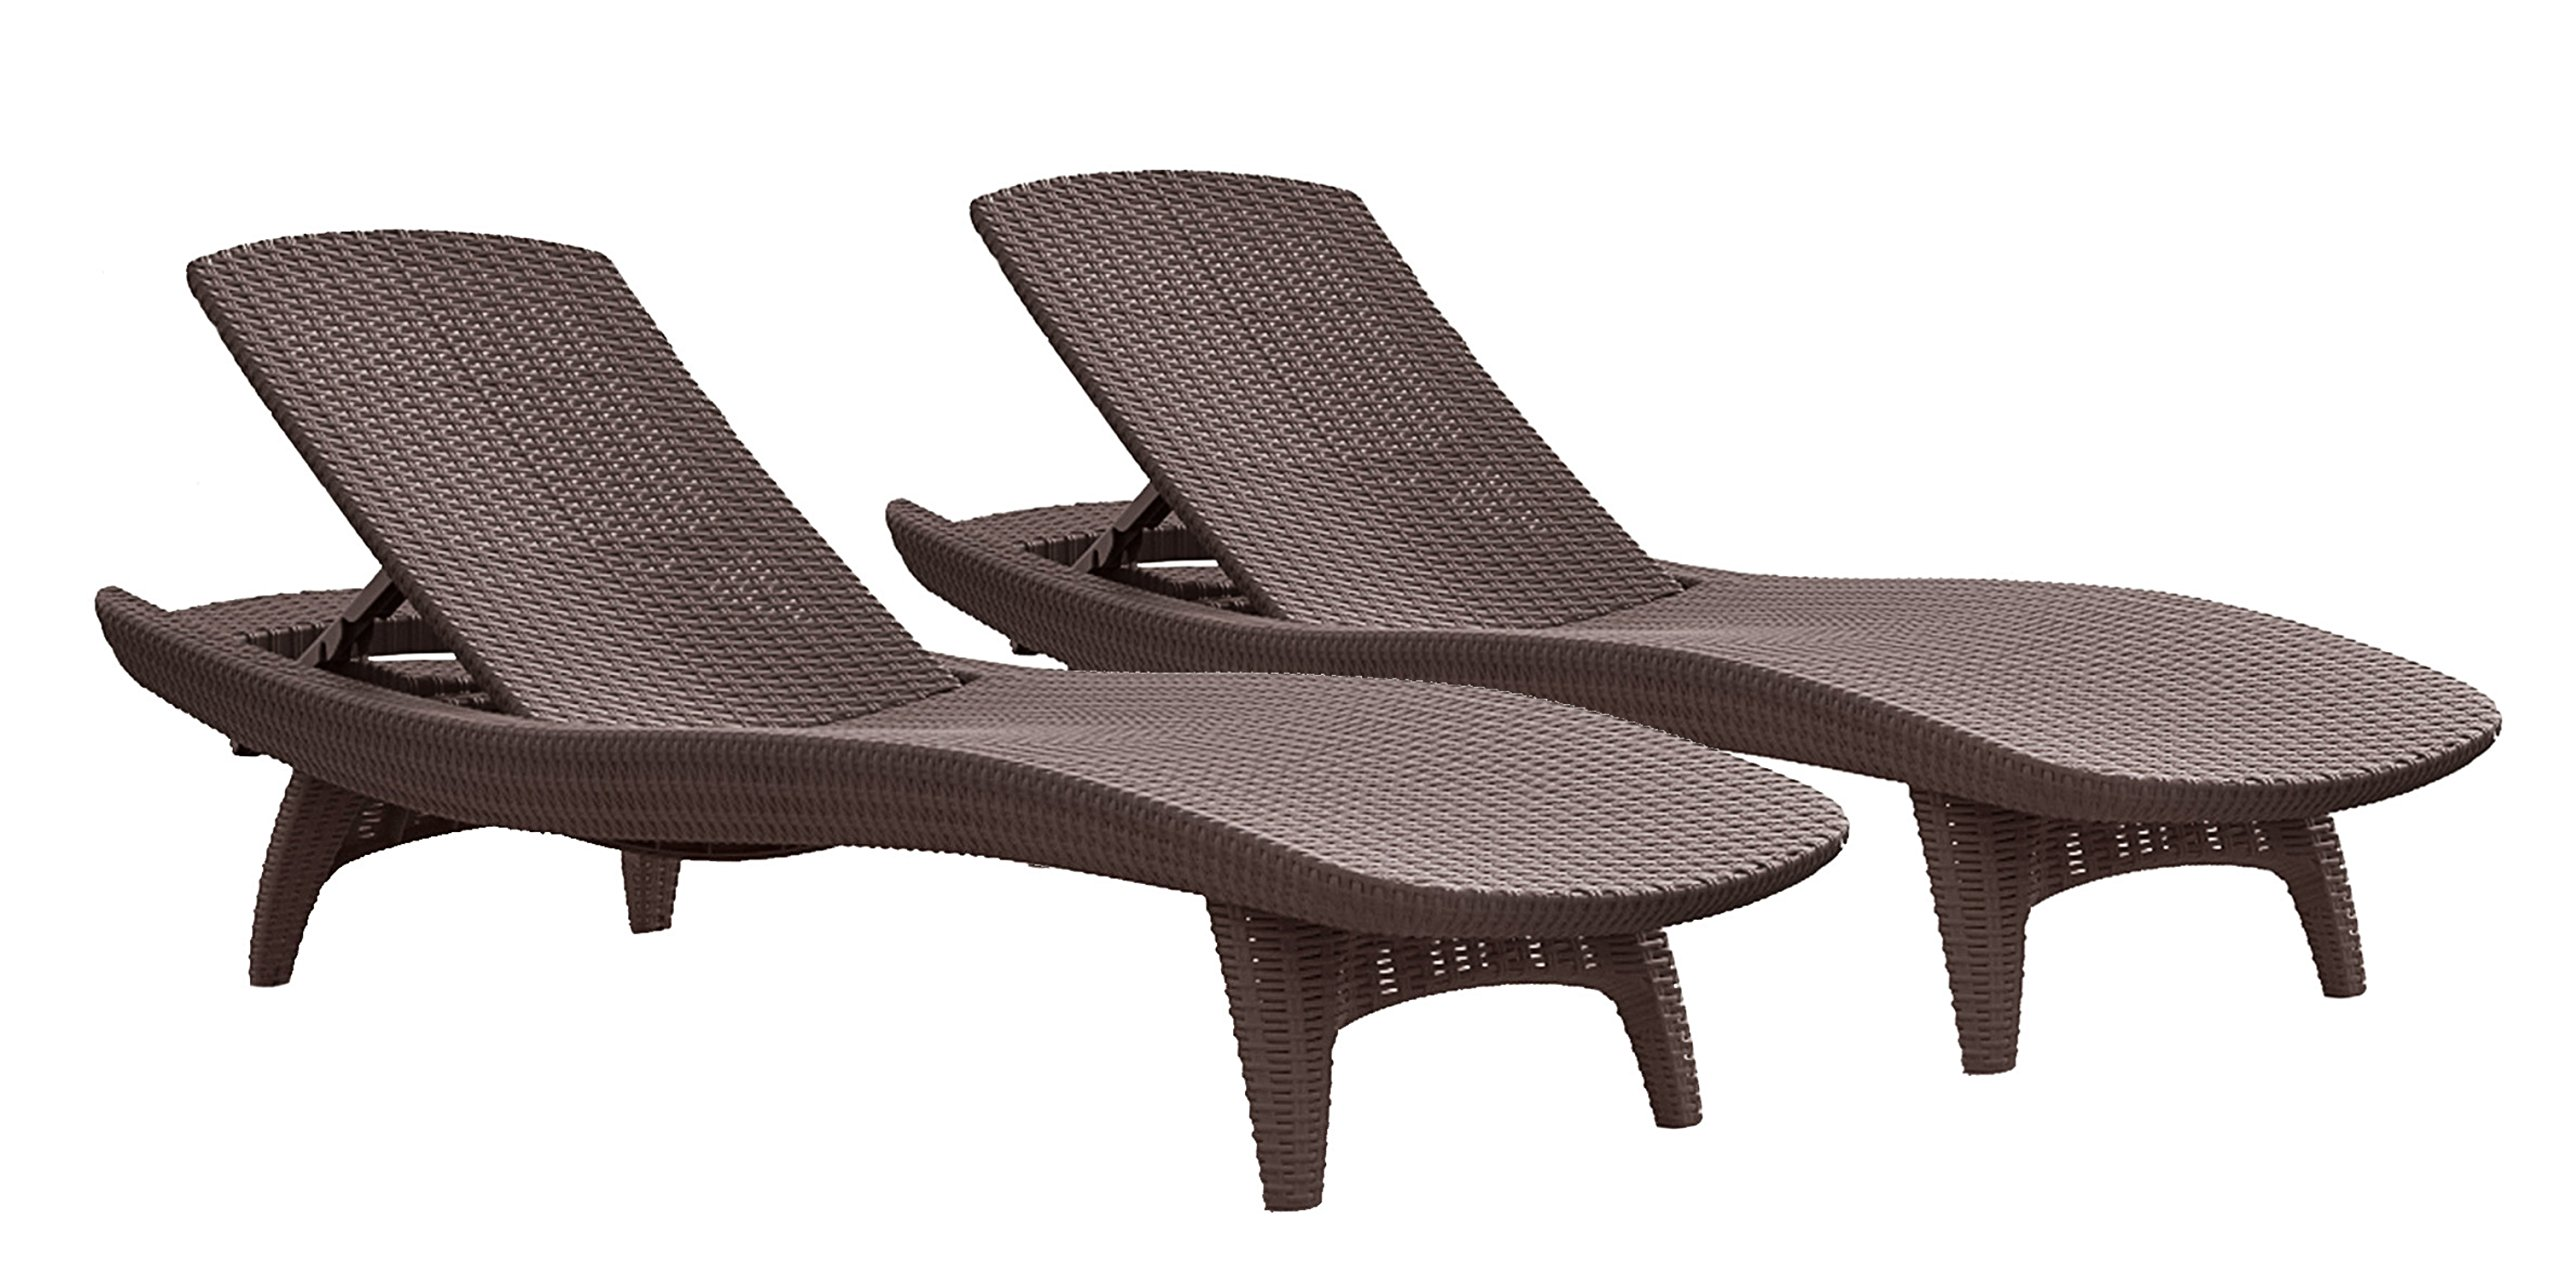 Keter Pacific 2 Pack All Weather Adjustable Outdoor Patio